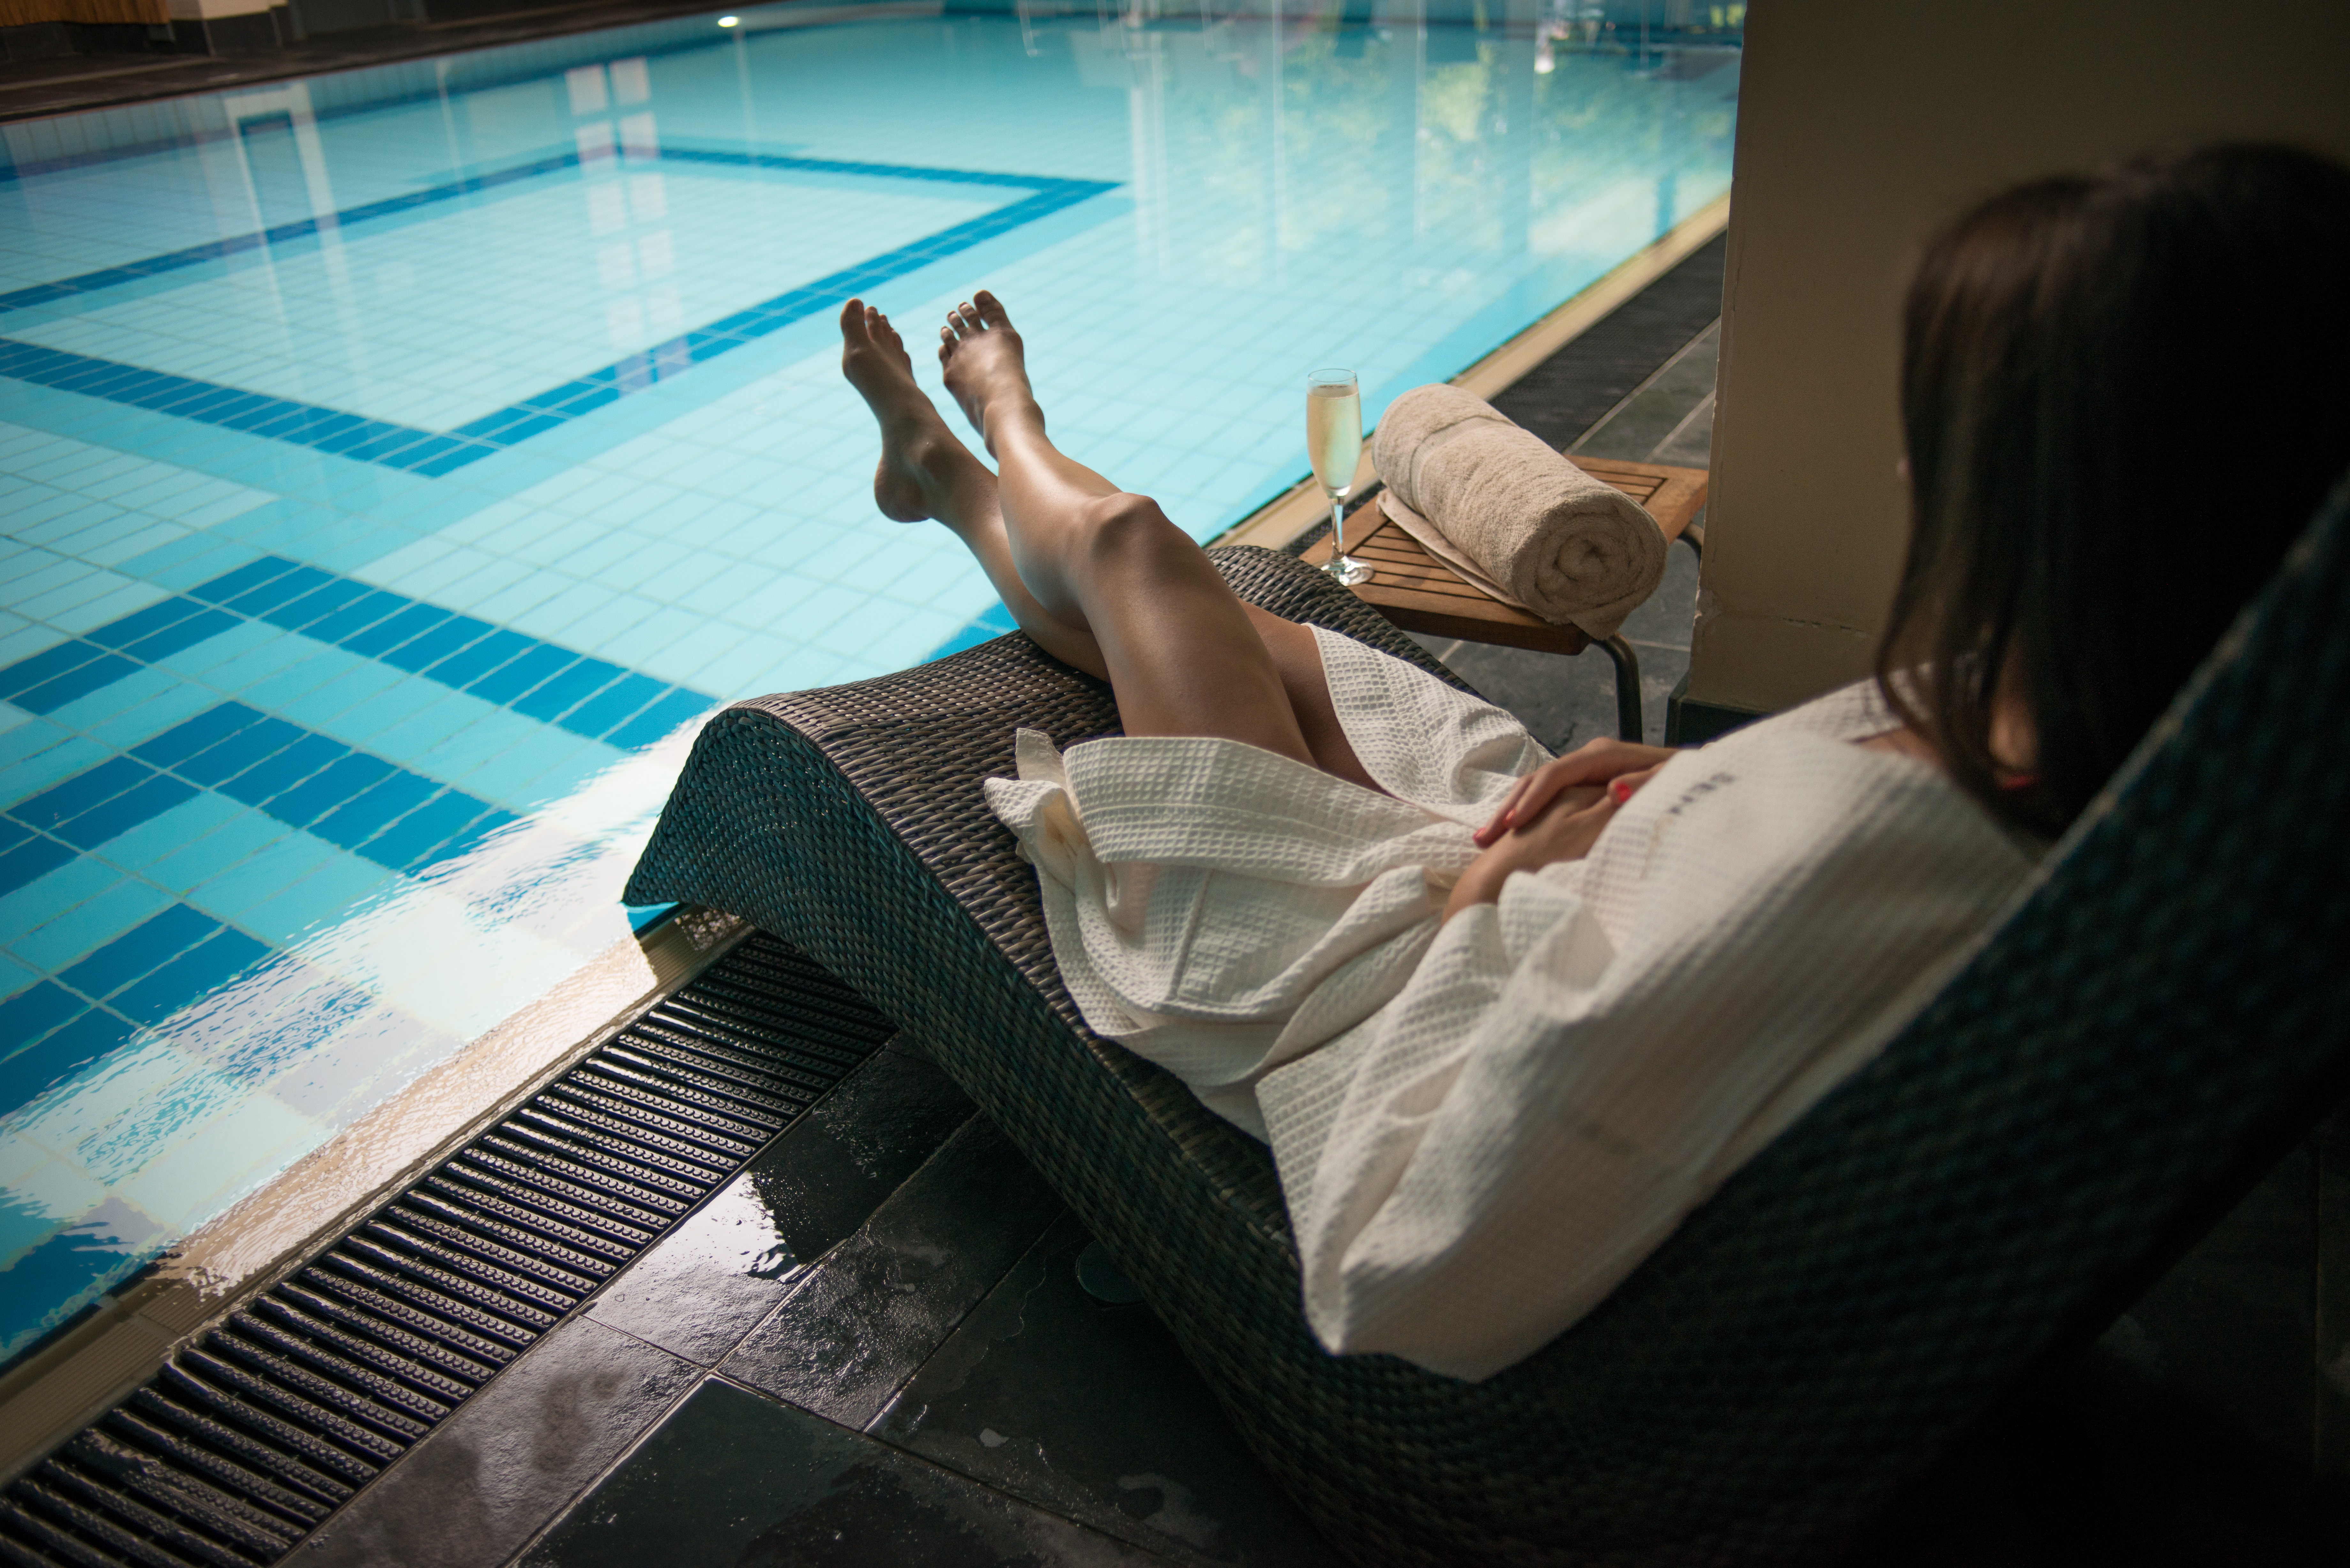 Relaxing by the pool at SenSpa with a glass of bubbles